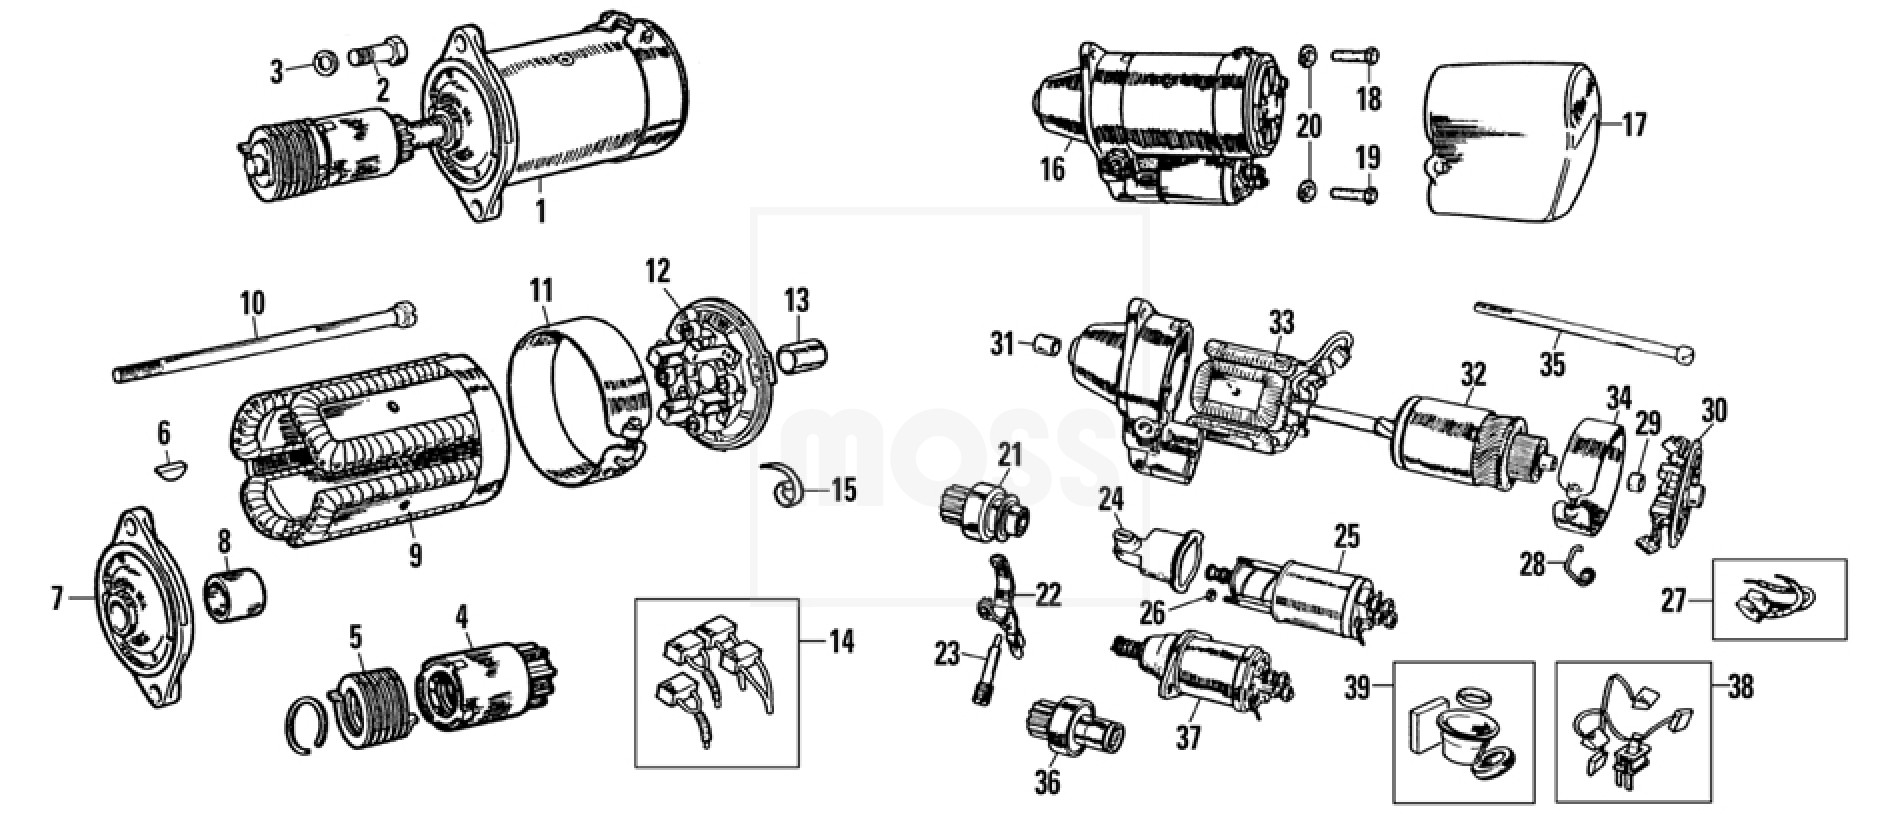 7623 truck wont run with Mazda 6 Parts Catalog on Mini Security Cam Wiring Diagram in addition 6 Way Trailer Connector Wiring Diagram Pdf further For John Deere Onan Engine Wiring Diagram Pdf moreover Wiring Diagram Of A Tube Light likewise Suzuki Dr 250 Wiring Diagram.